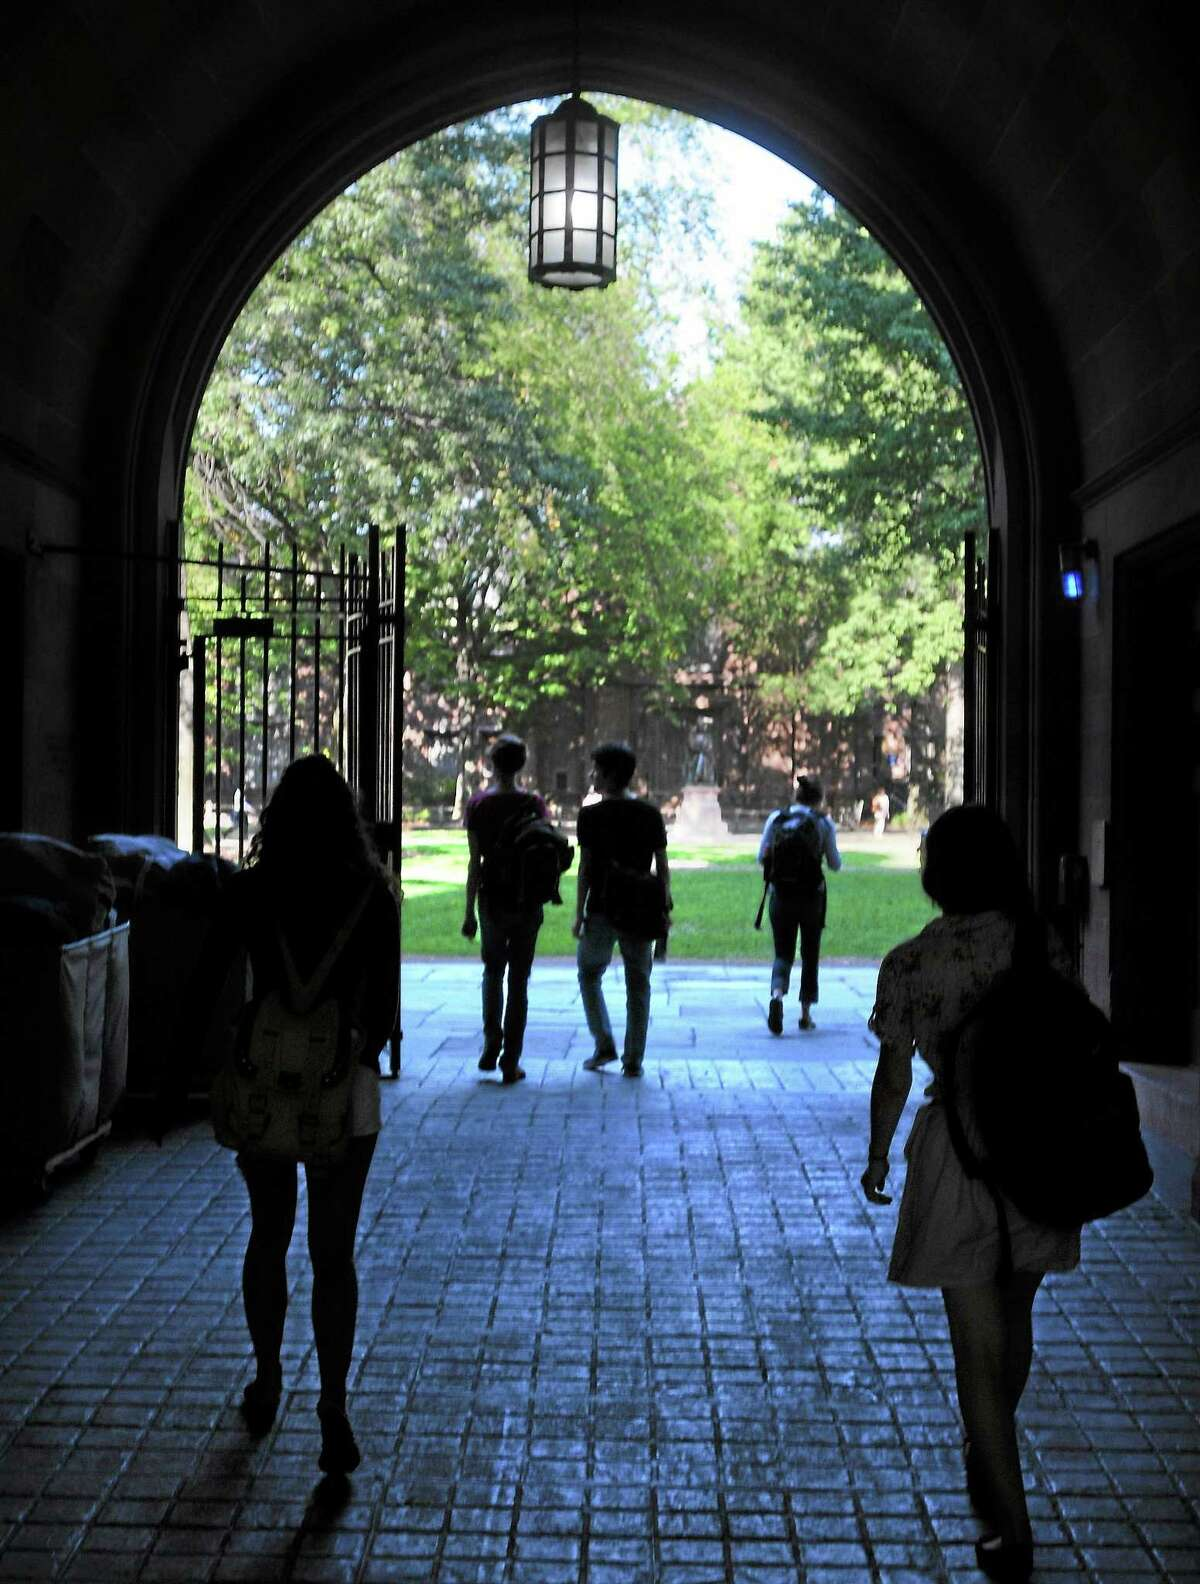 Despite the efforts of Florida Gov. Rick Scott, Yale's students will continue to call the Old Campus in New Haven home.